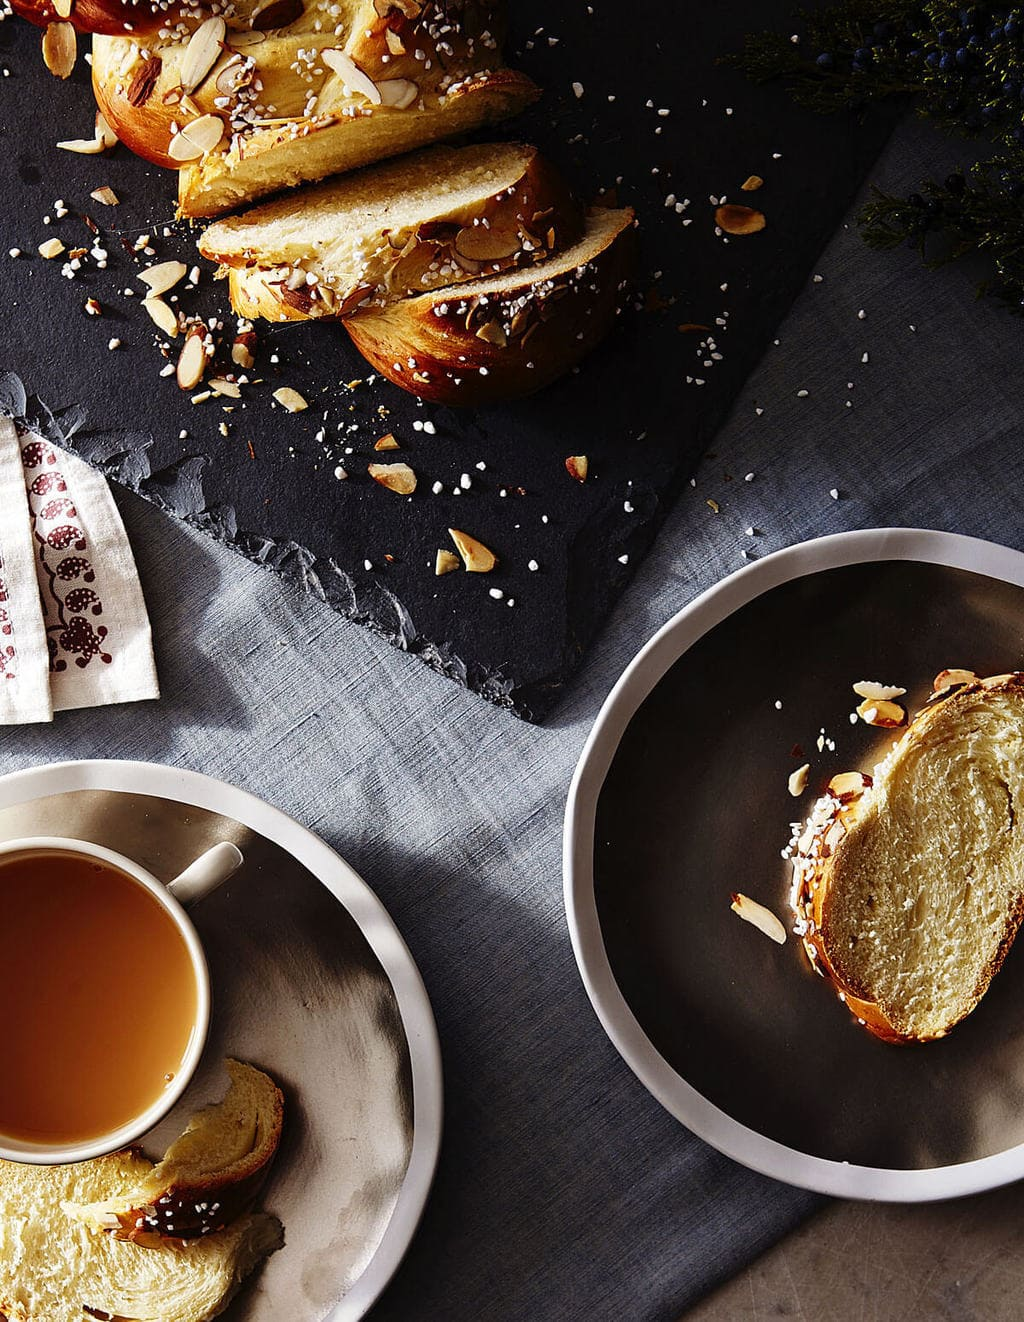 Sliced pulla bread with coffee